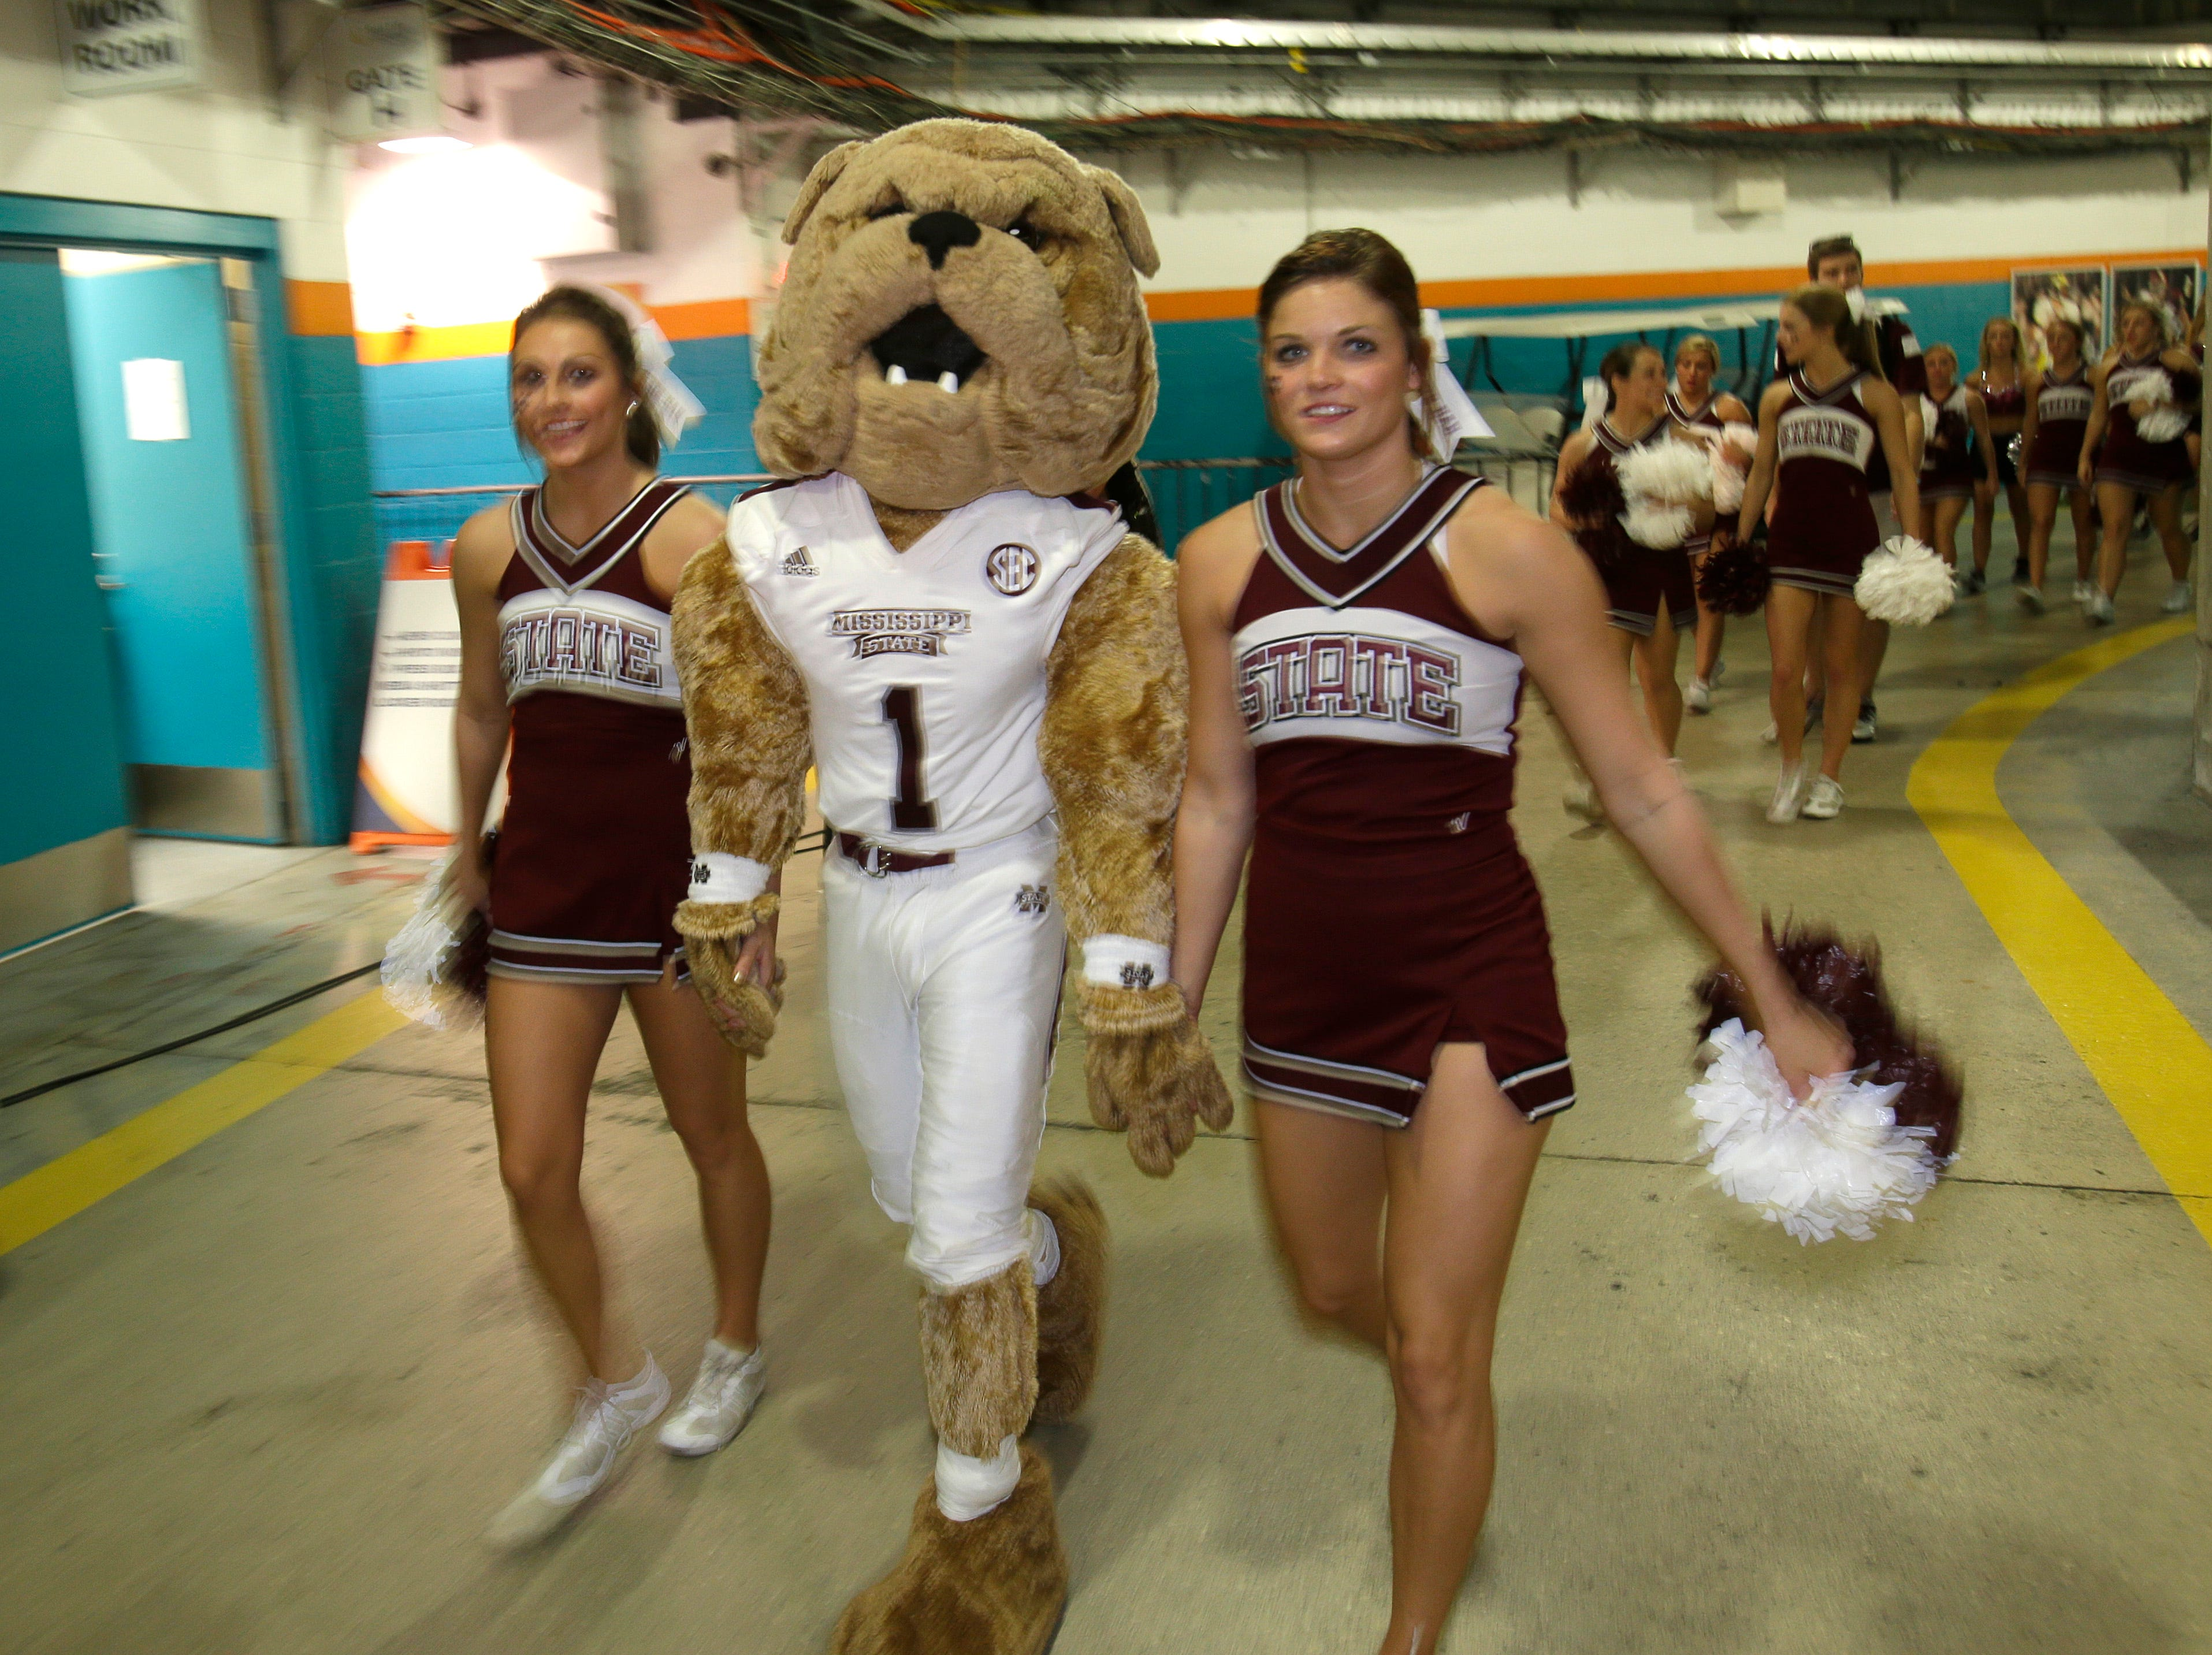 "Mississippi State mascot ""Bully"" walks with cheerleaders before the start of the Orange Bowl NCAA College football game between Georgia Tech and Mississippi State, Wednesday, Dec. 31, 2014 in Miami Gardens, Fla. (AP Photo/Wilfredo Lee)"